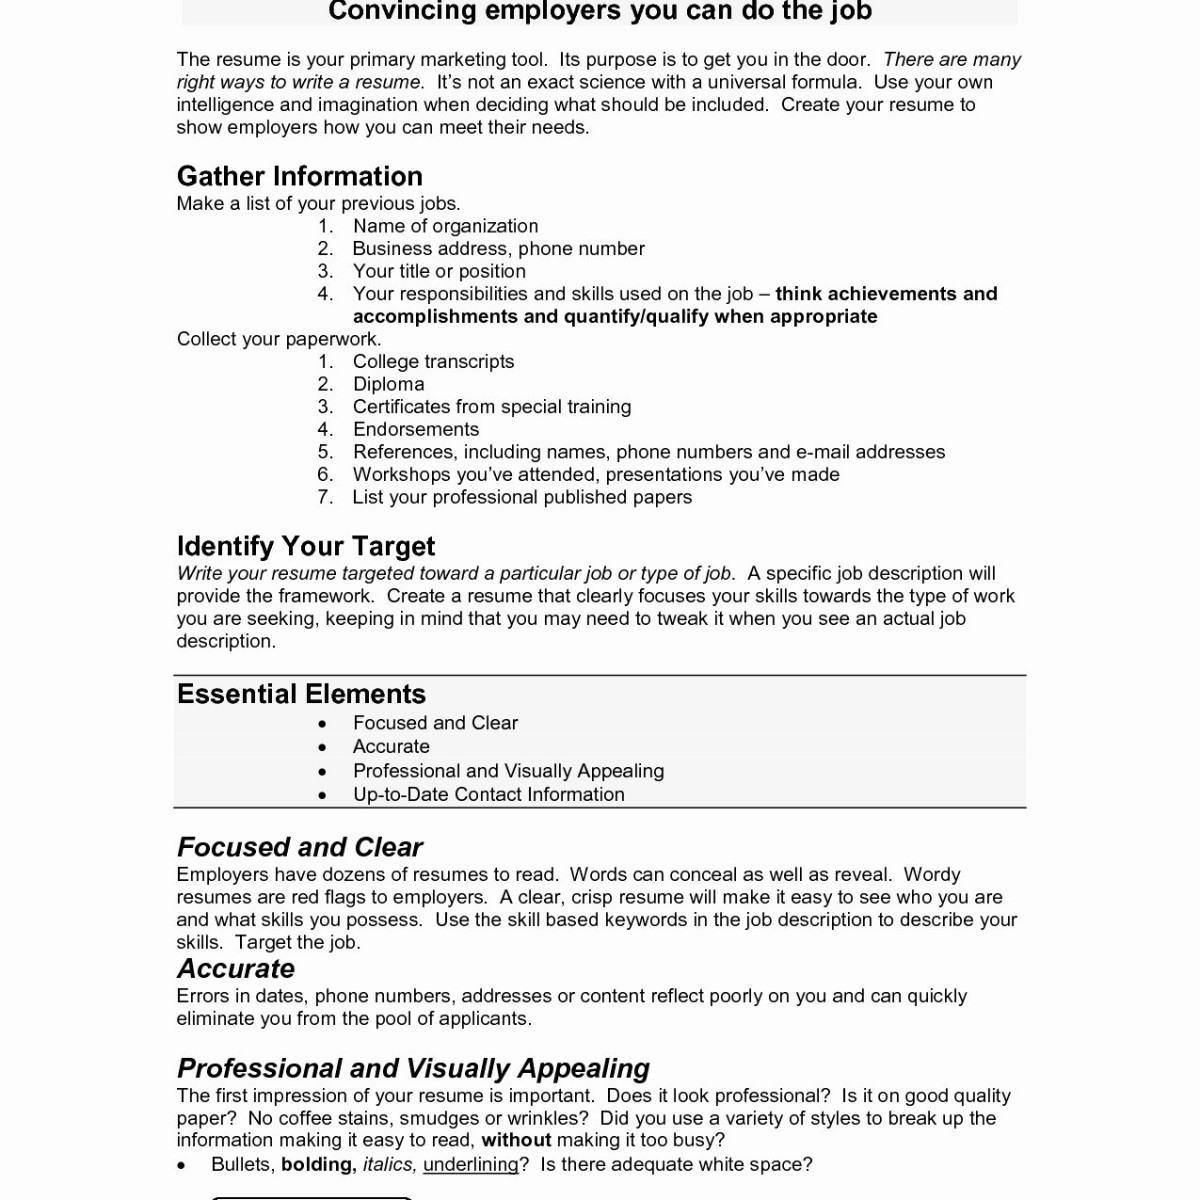 visually appealing resume Collection-How To Type Up A Resume For A Job Unique Best Examples Resumes from Visually Appealing Resume source erbilclub 8-e